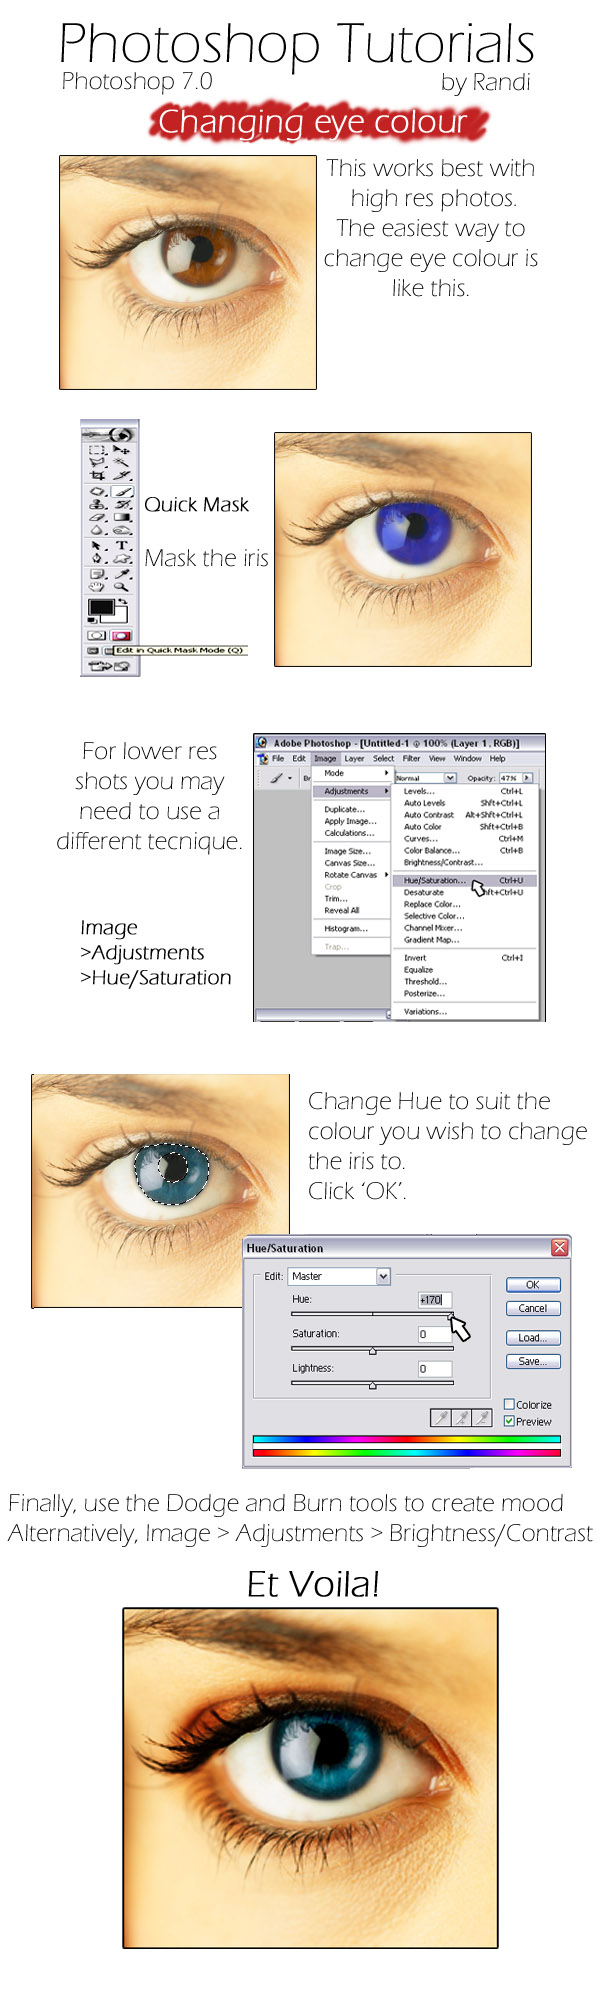 RT - Changing Eye Colour by Randi-Tutorials